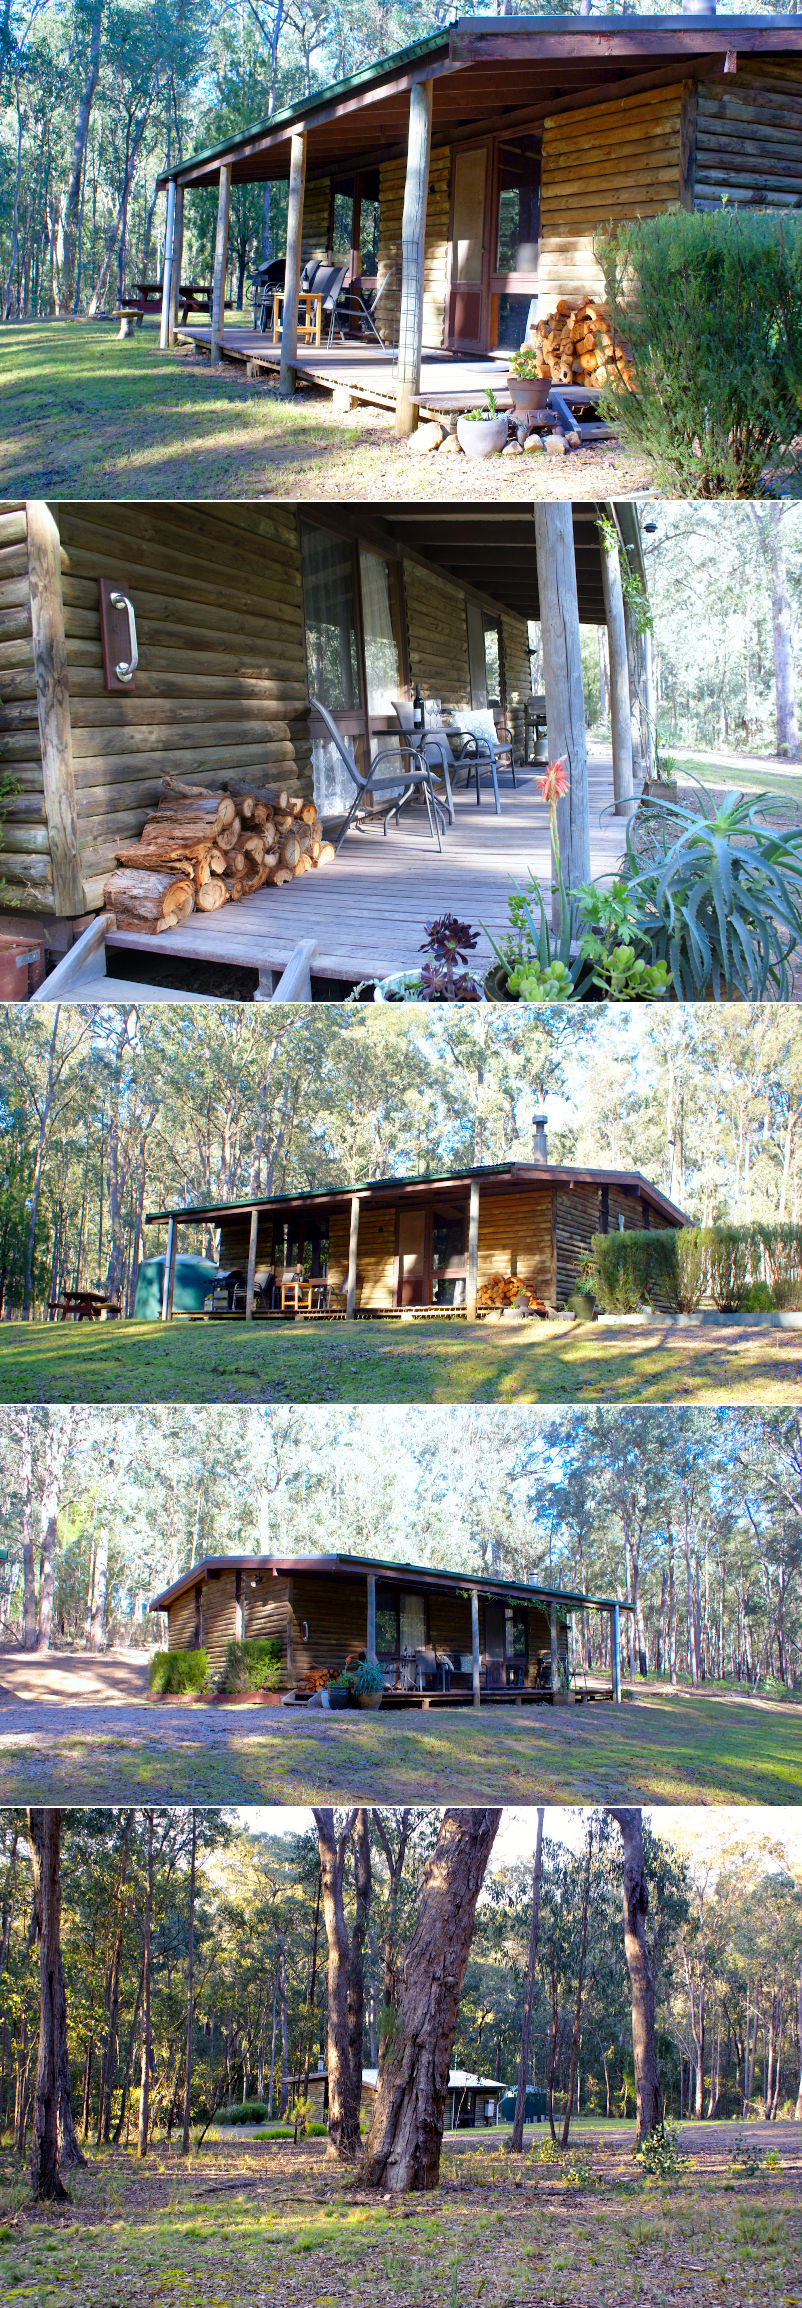 Parkvale Holiday Cabins - Outside